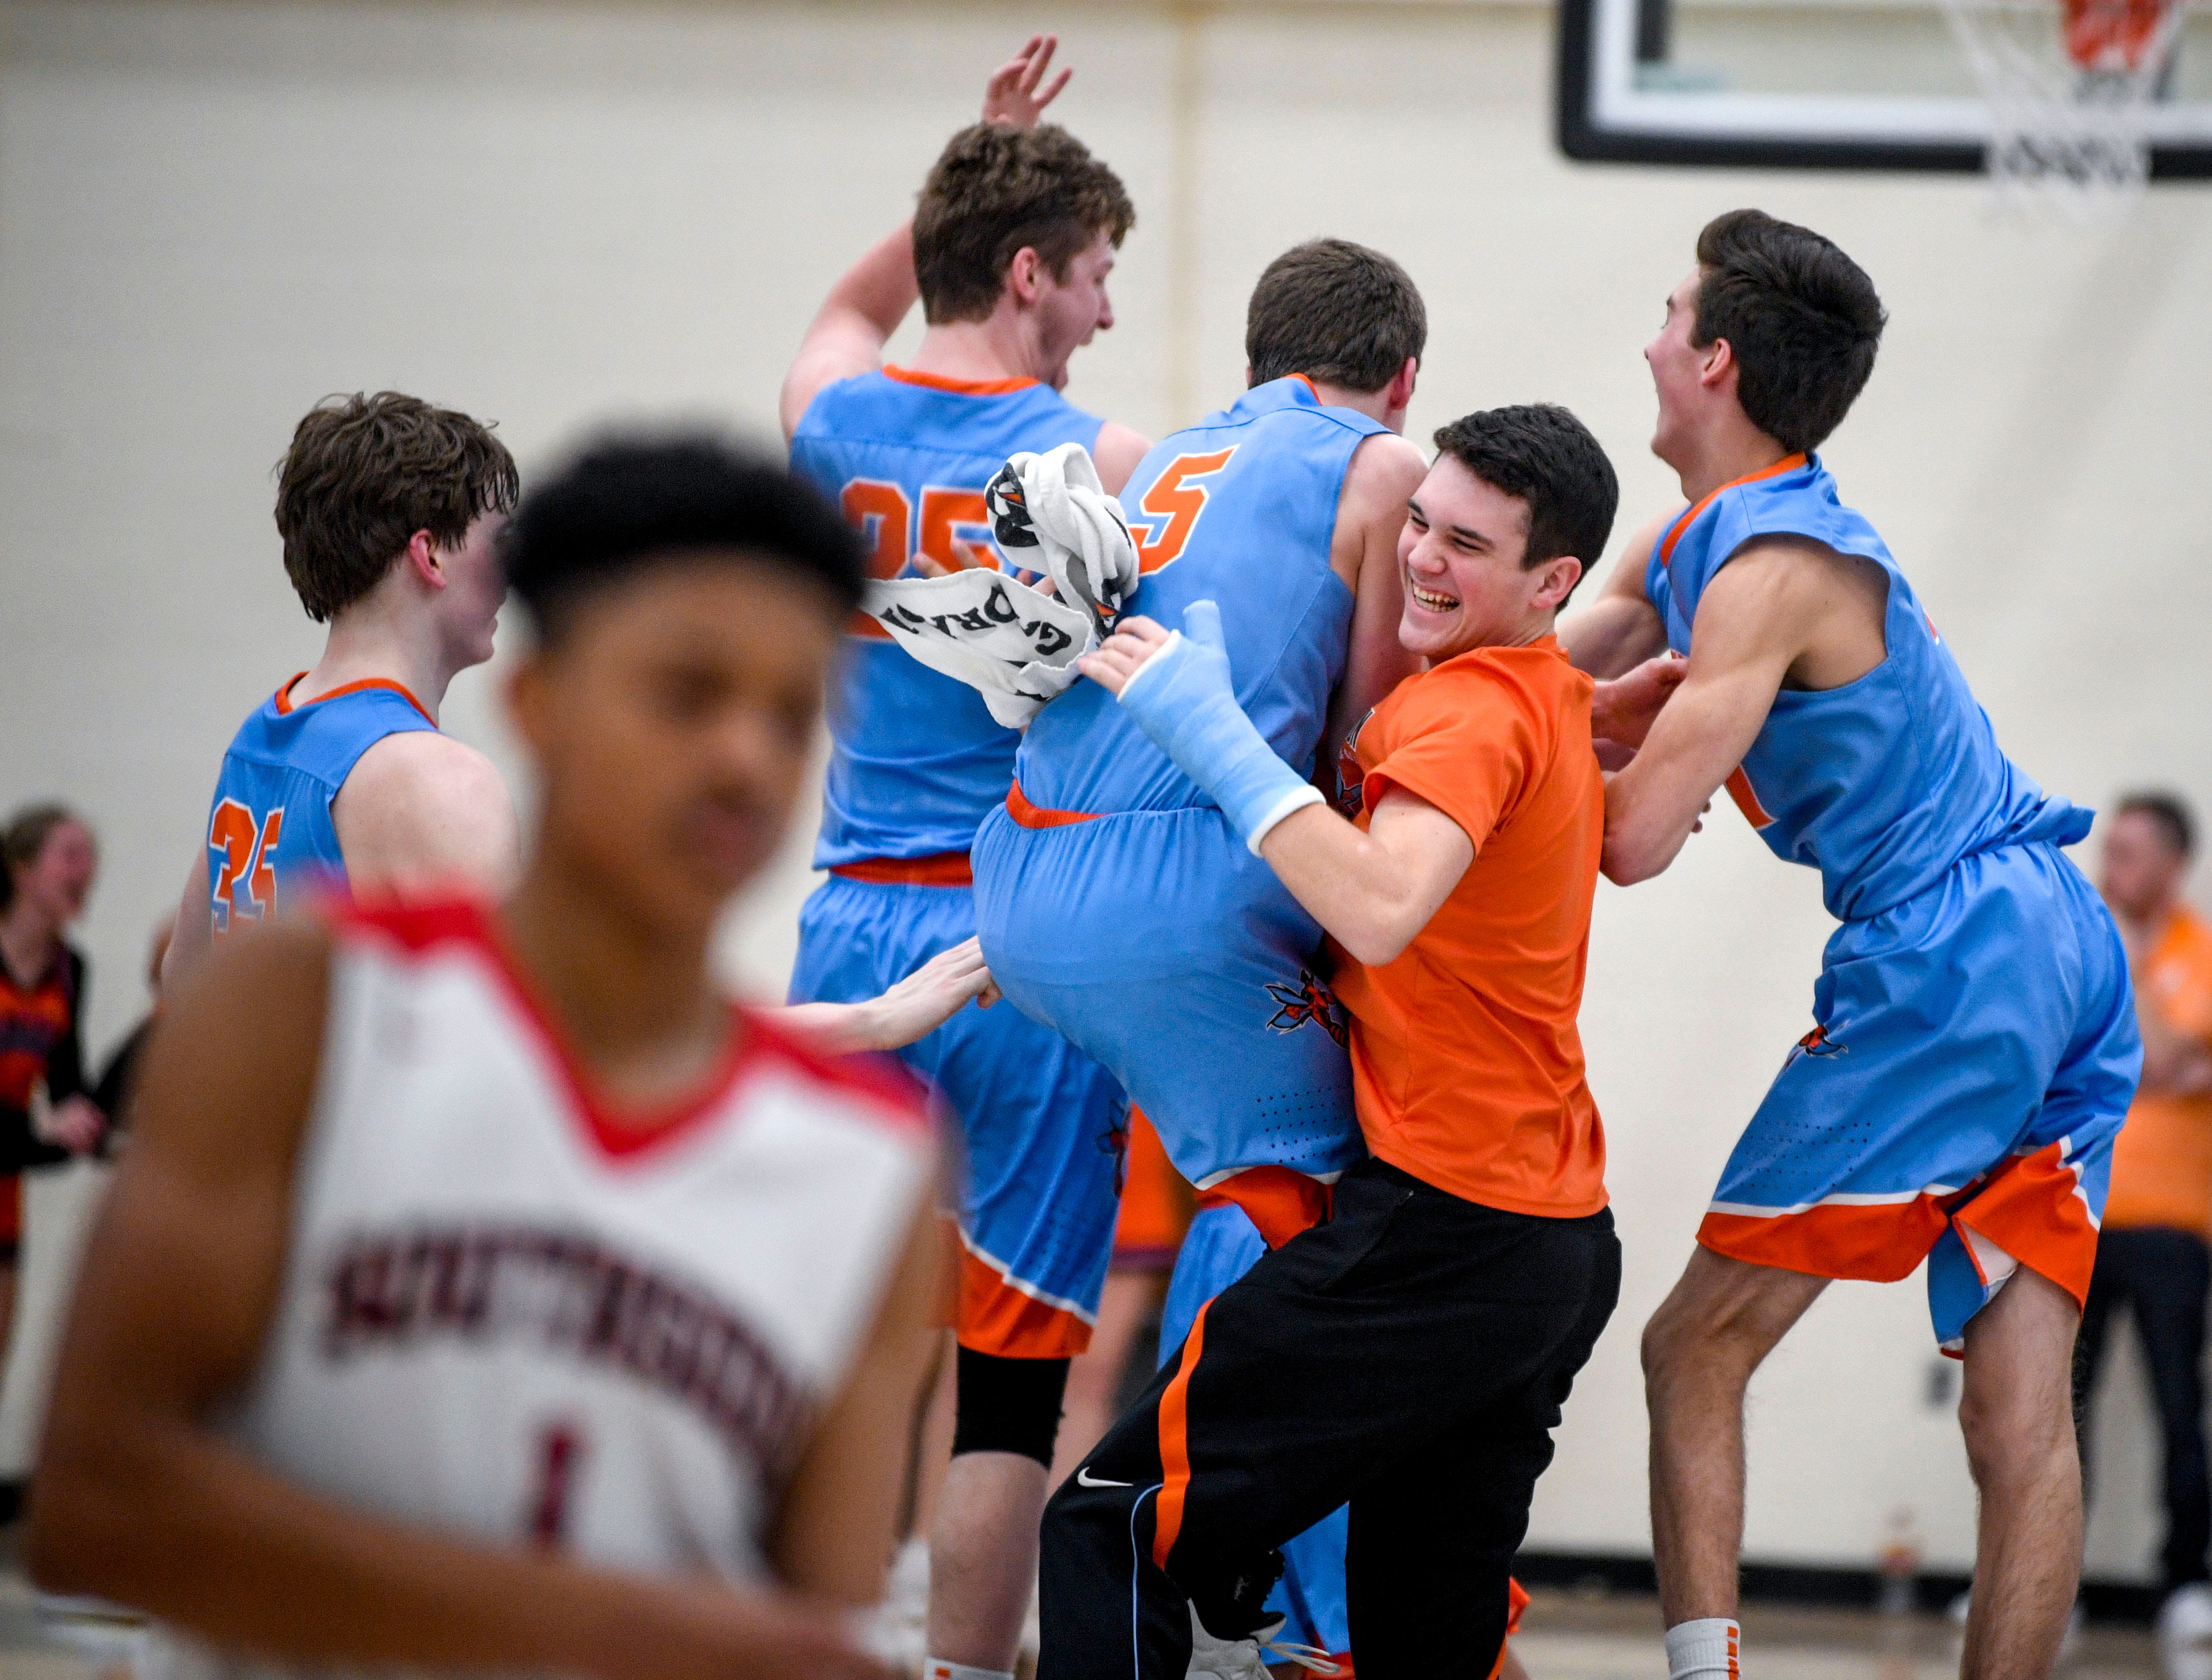 South Gibson players celebrate after the buzzer during the TSSAA Region 7-AA semifinal game between South Side and South Gibson after an upset result at Dyersburg High School, in Dyersburg, Tenn., on Tuesday, Feb. 26, 2019.